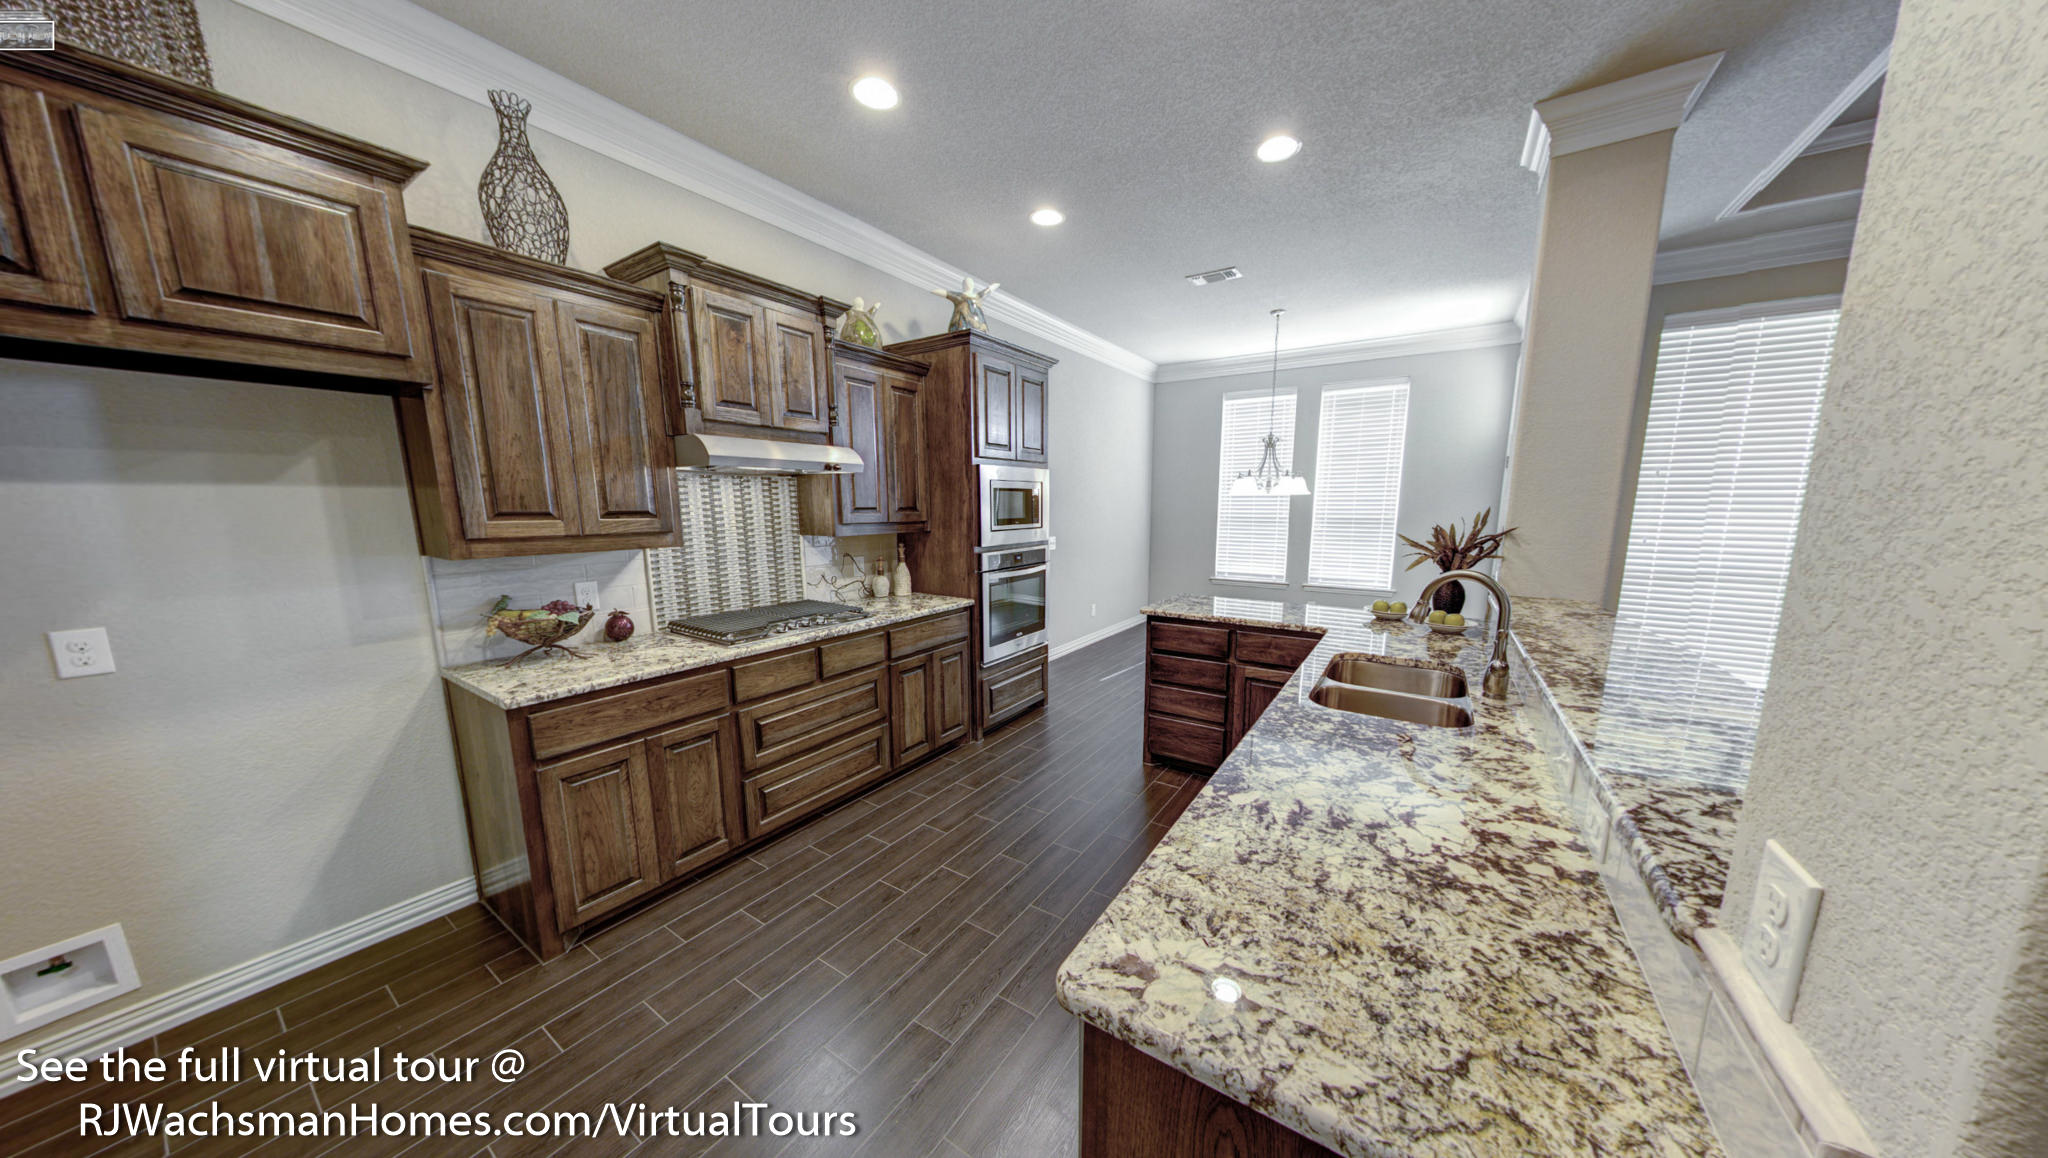 Check out this house's virtual tour!